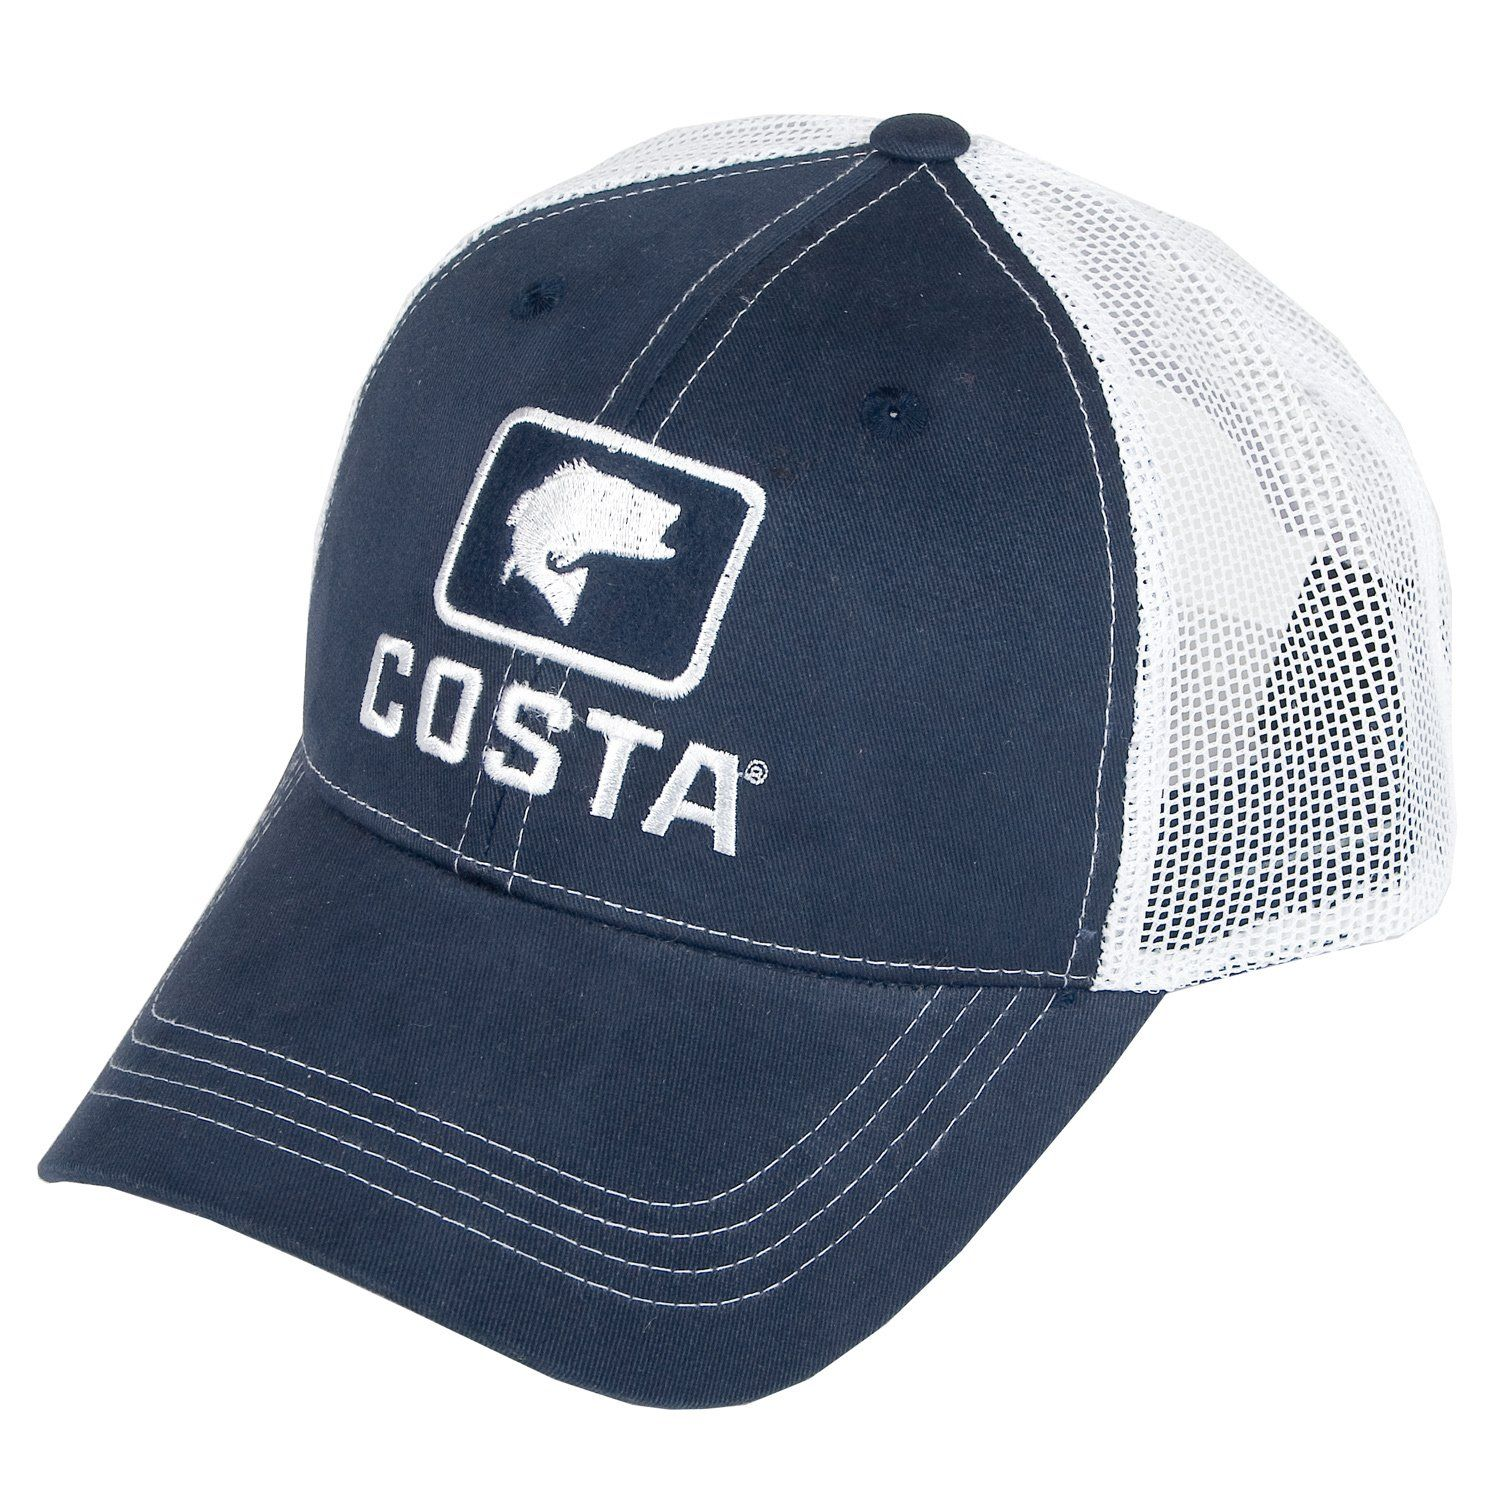 Mens Costa Del Mar Bass XL Trucker Navy White One Size  1d9dd7cae00c